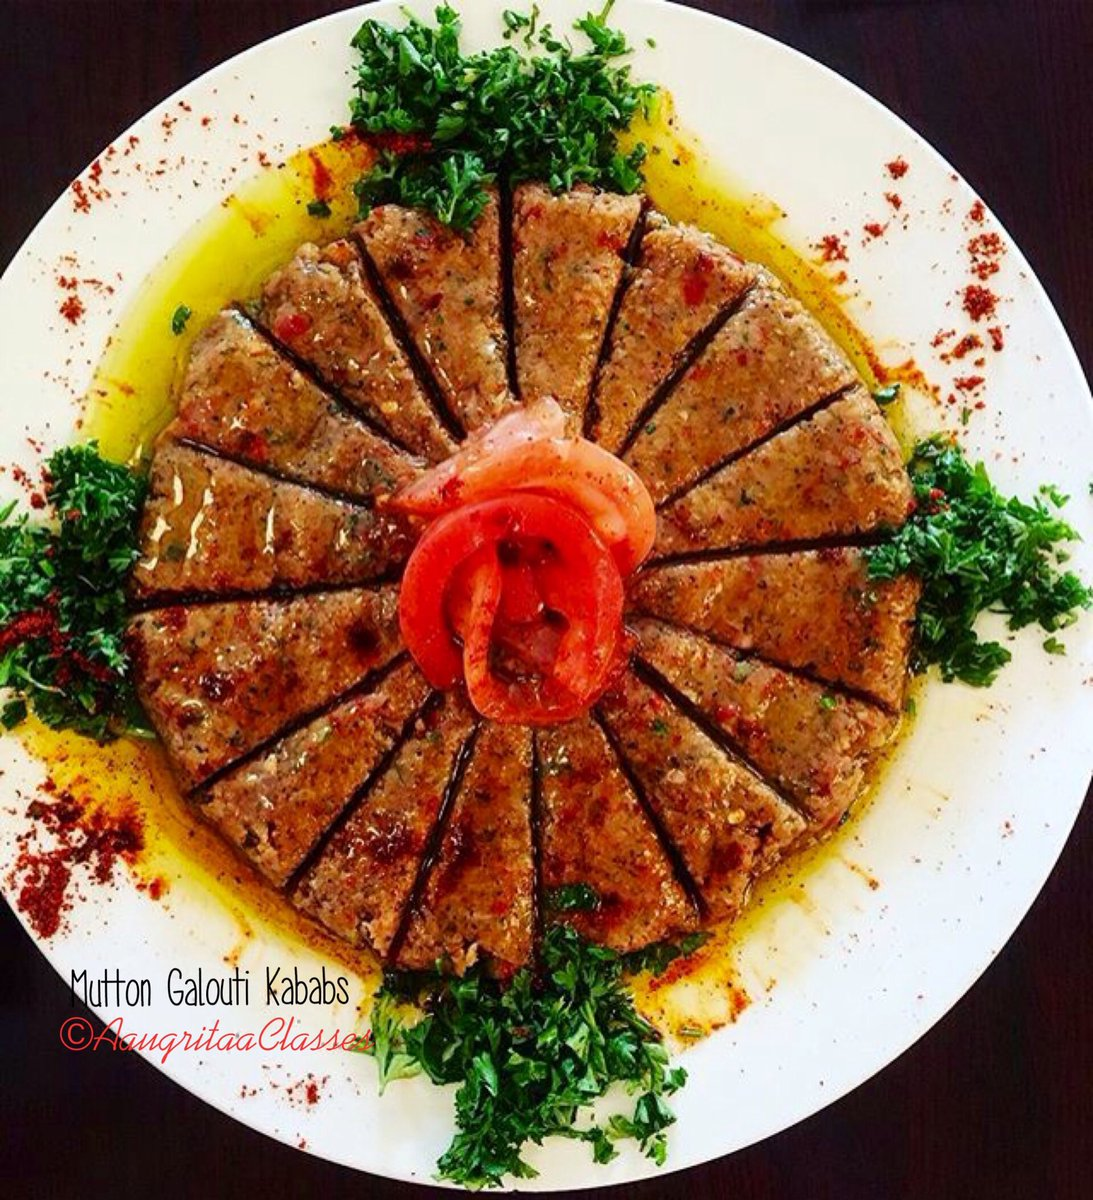 When you do plating of #GaloutiKababs in a different way it looks more beautiful #Foodie #Kabab #Aaugritaa #Classes #Yummy #Presentation  <br>http://pic.twitter.com/faE0FADNLT